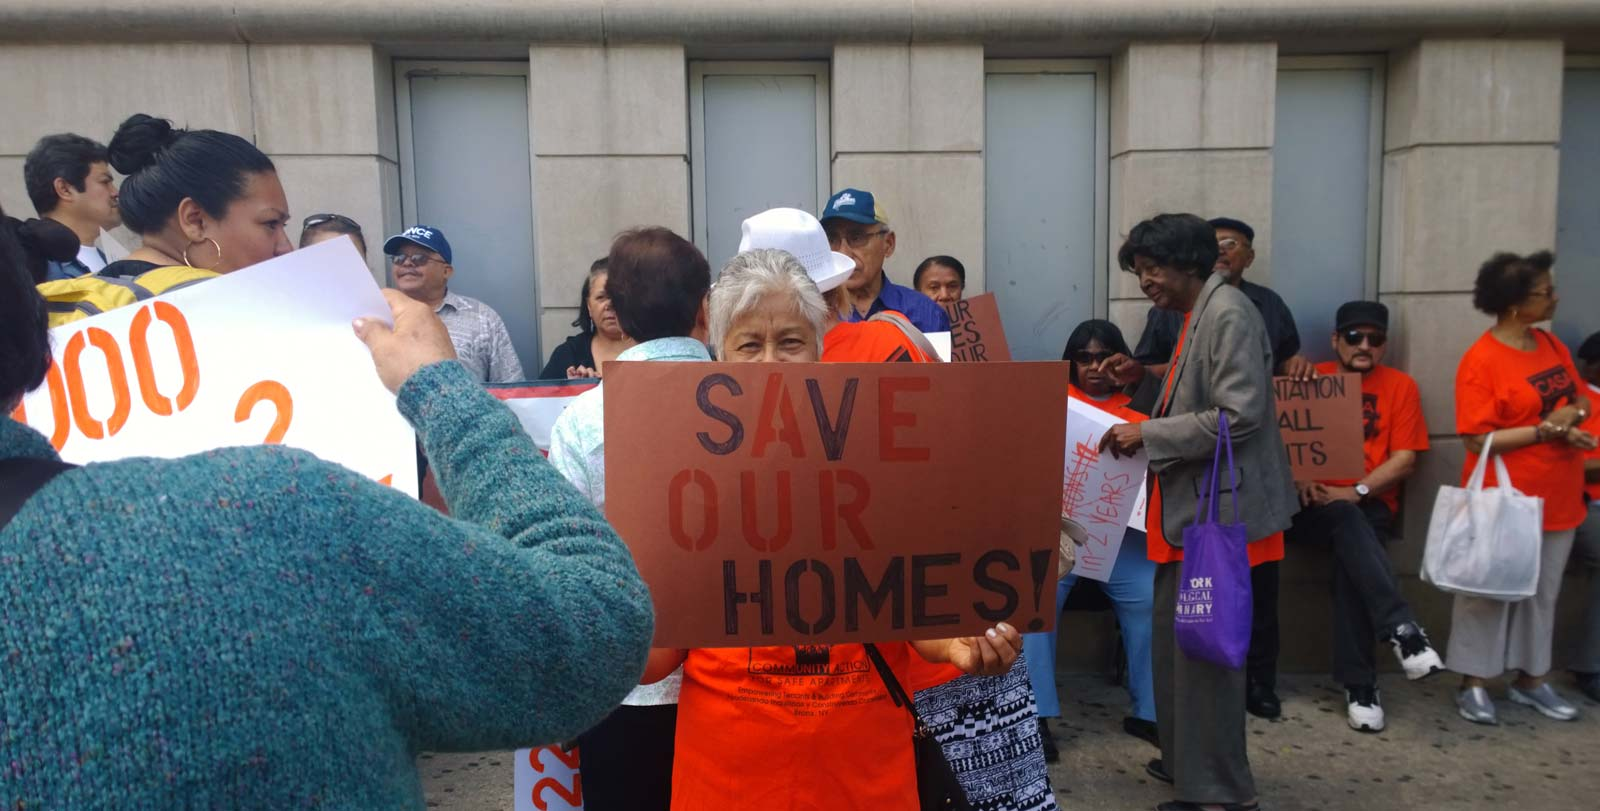 A group of Right to Counsel activists meet. One holds a sign reading Save Our Homes